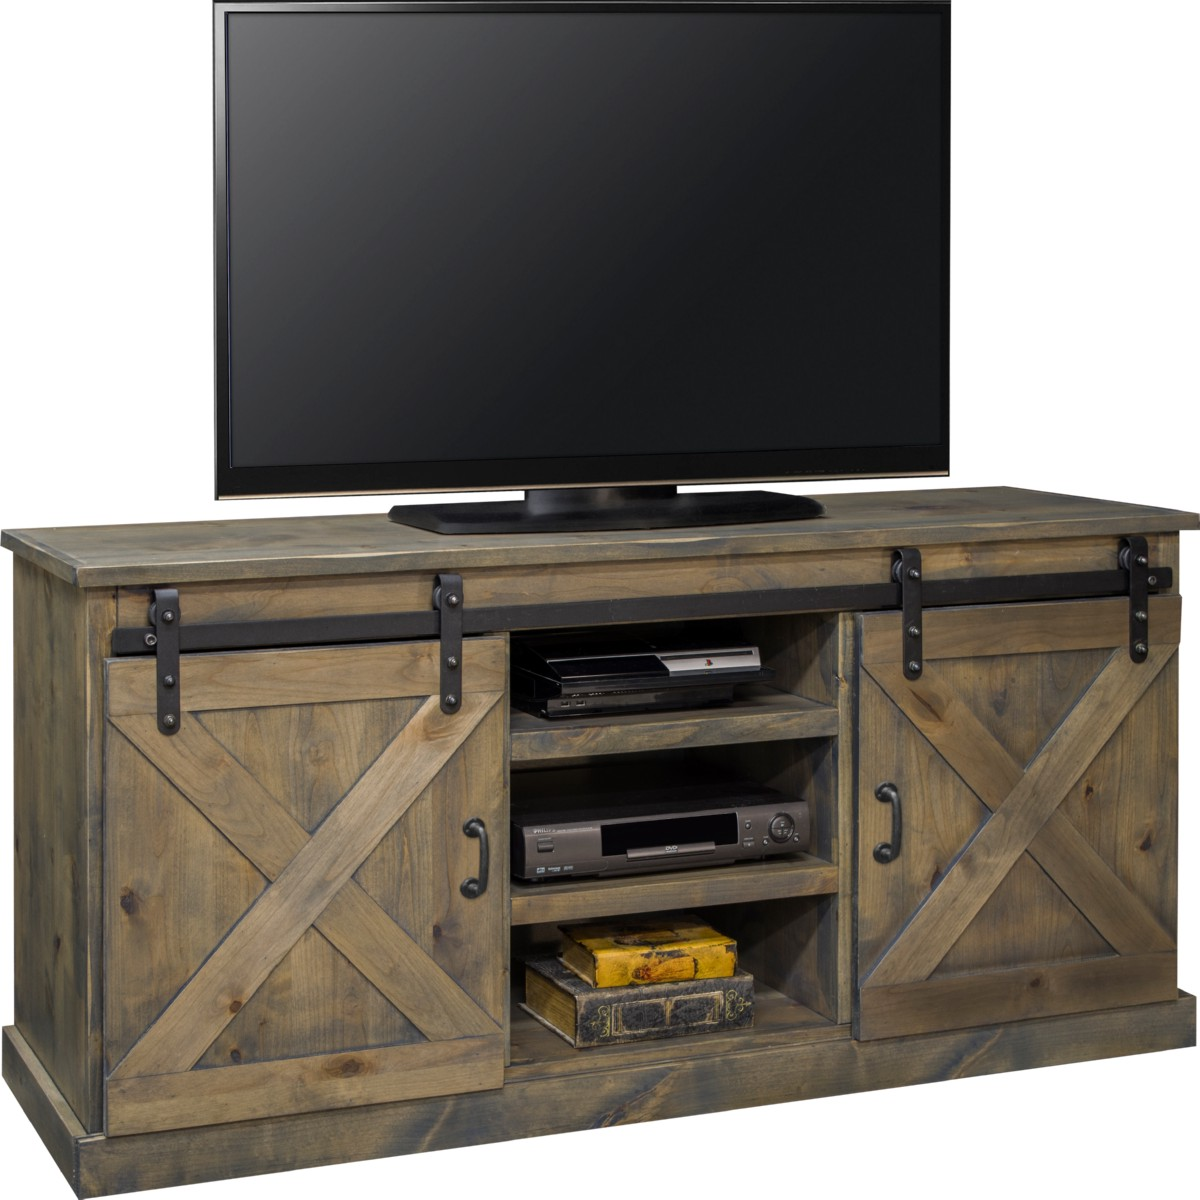 Legends Furniture FH1420 Farmhouse 66 TV Stand Console In